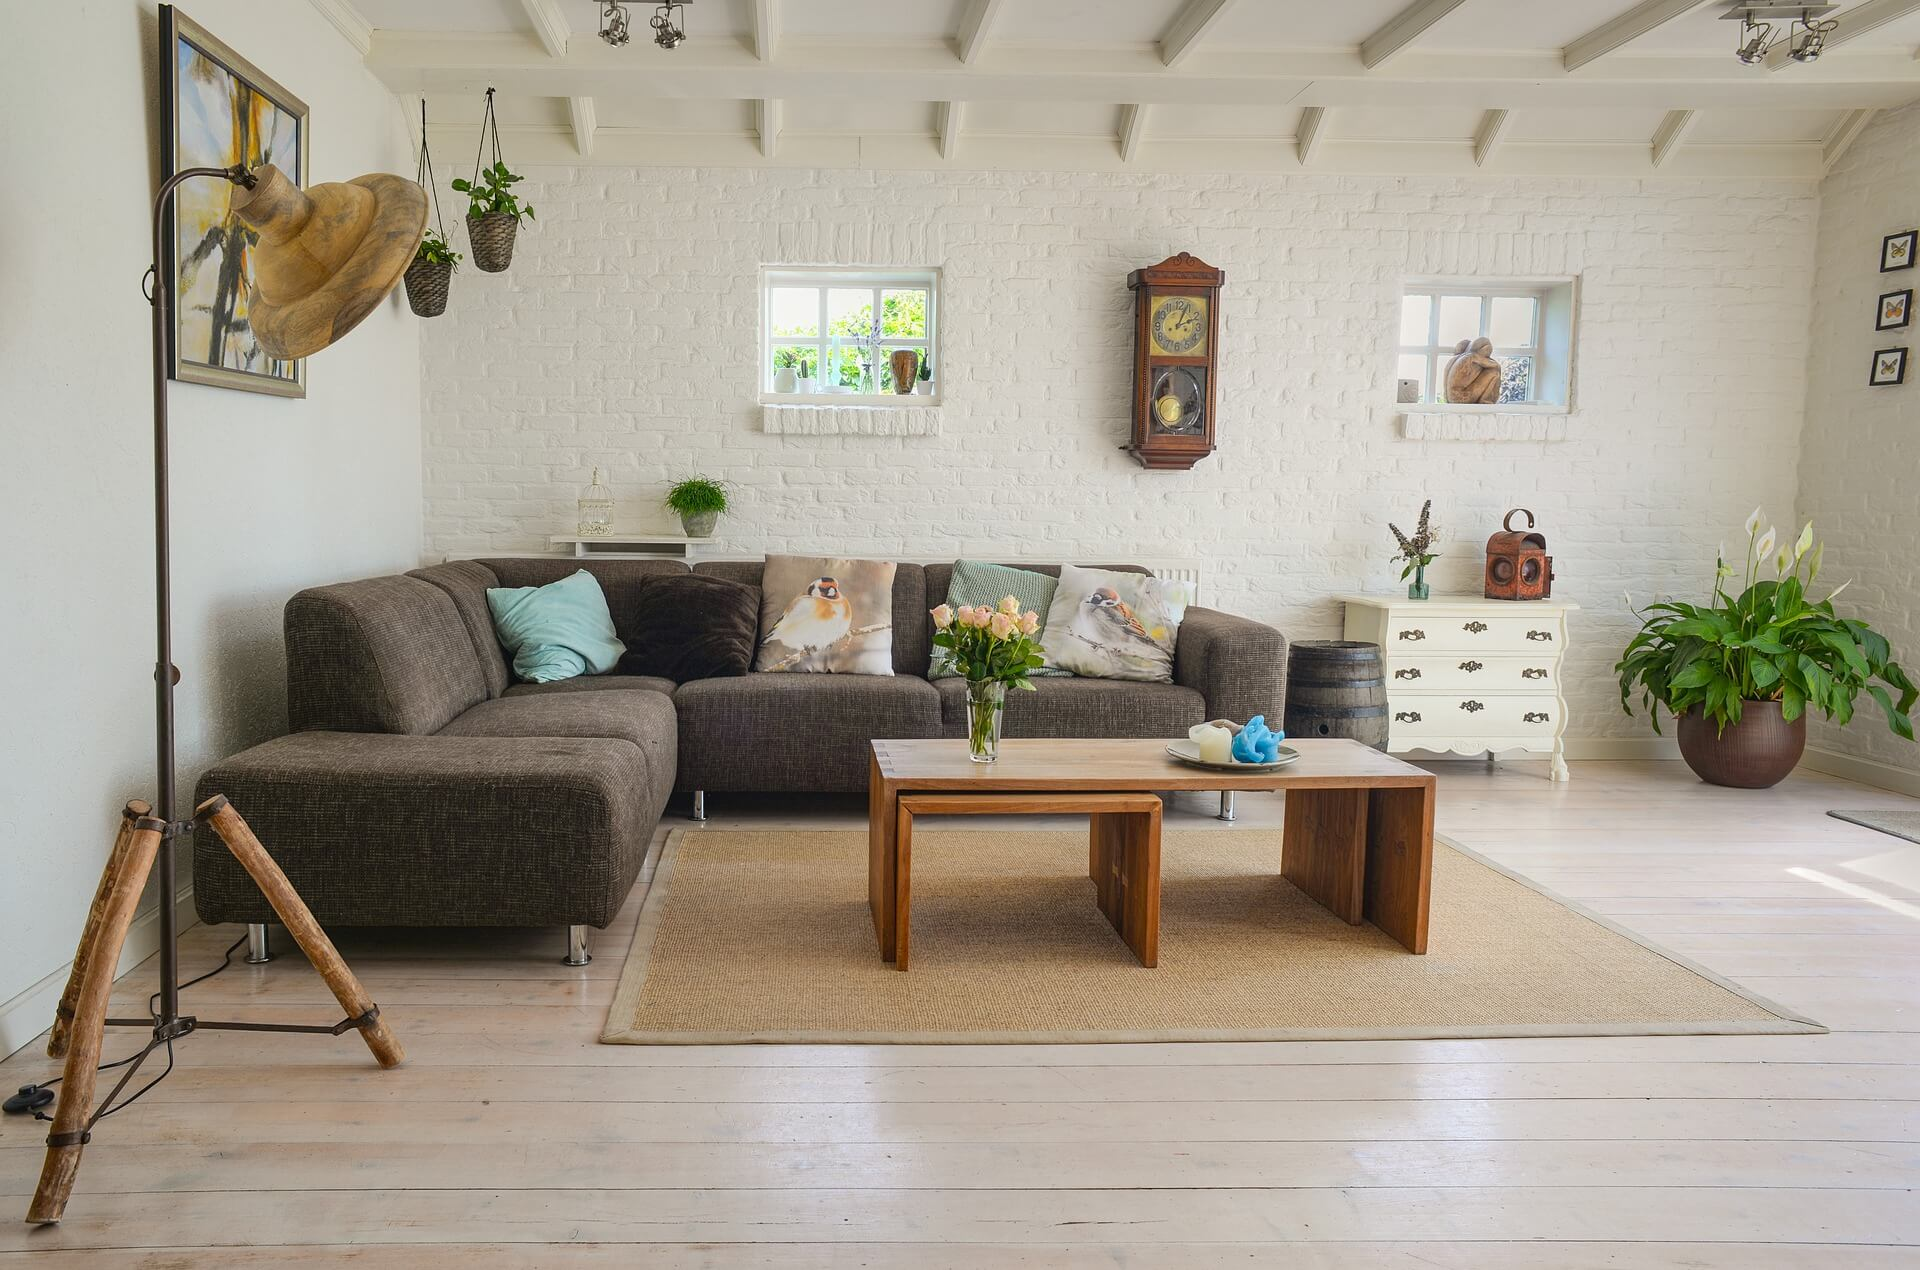 The Mortgage Professionals-living-room-2732939_1920 (1)